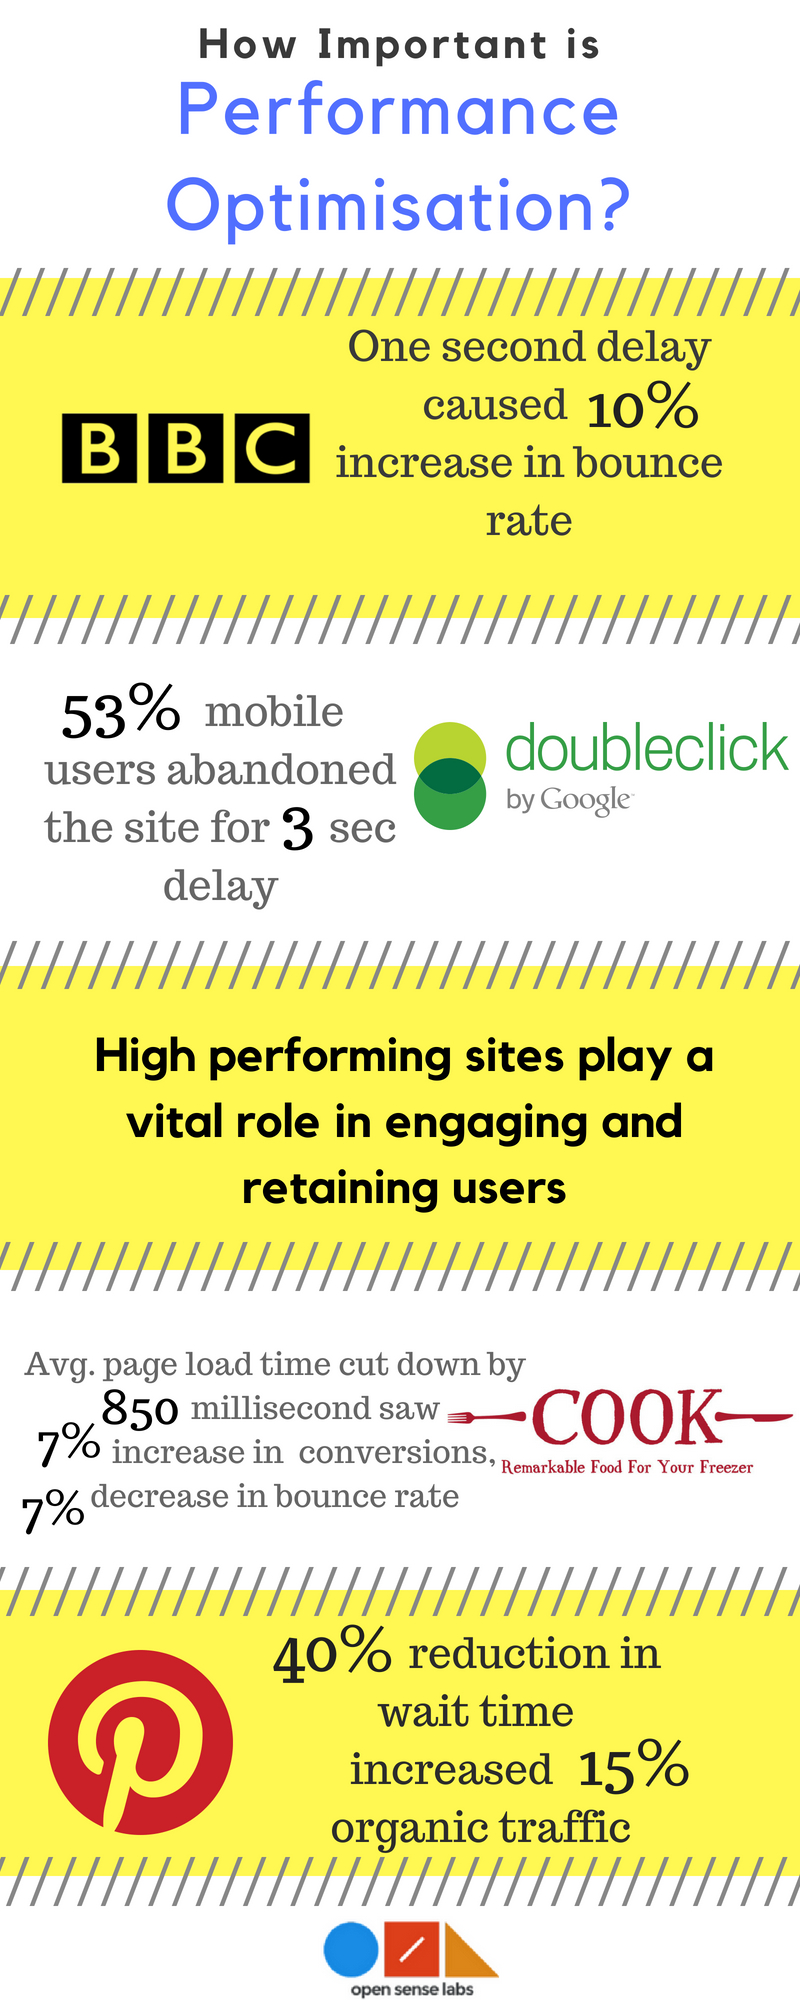 Infographic showing statistics on the importance of performance optimisation for improving user retention